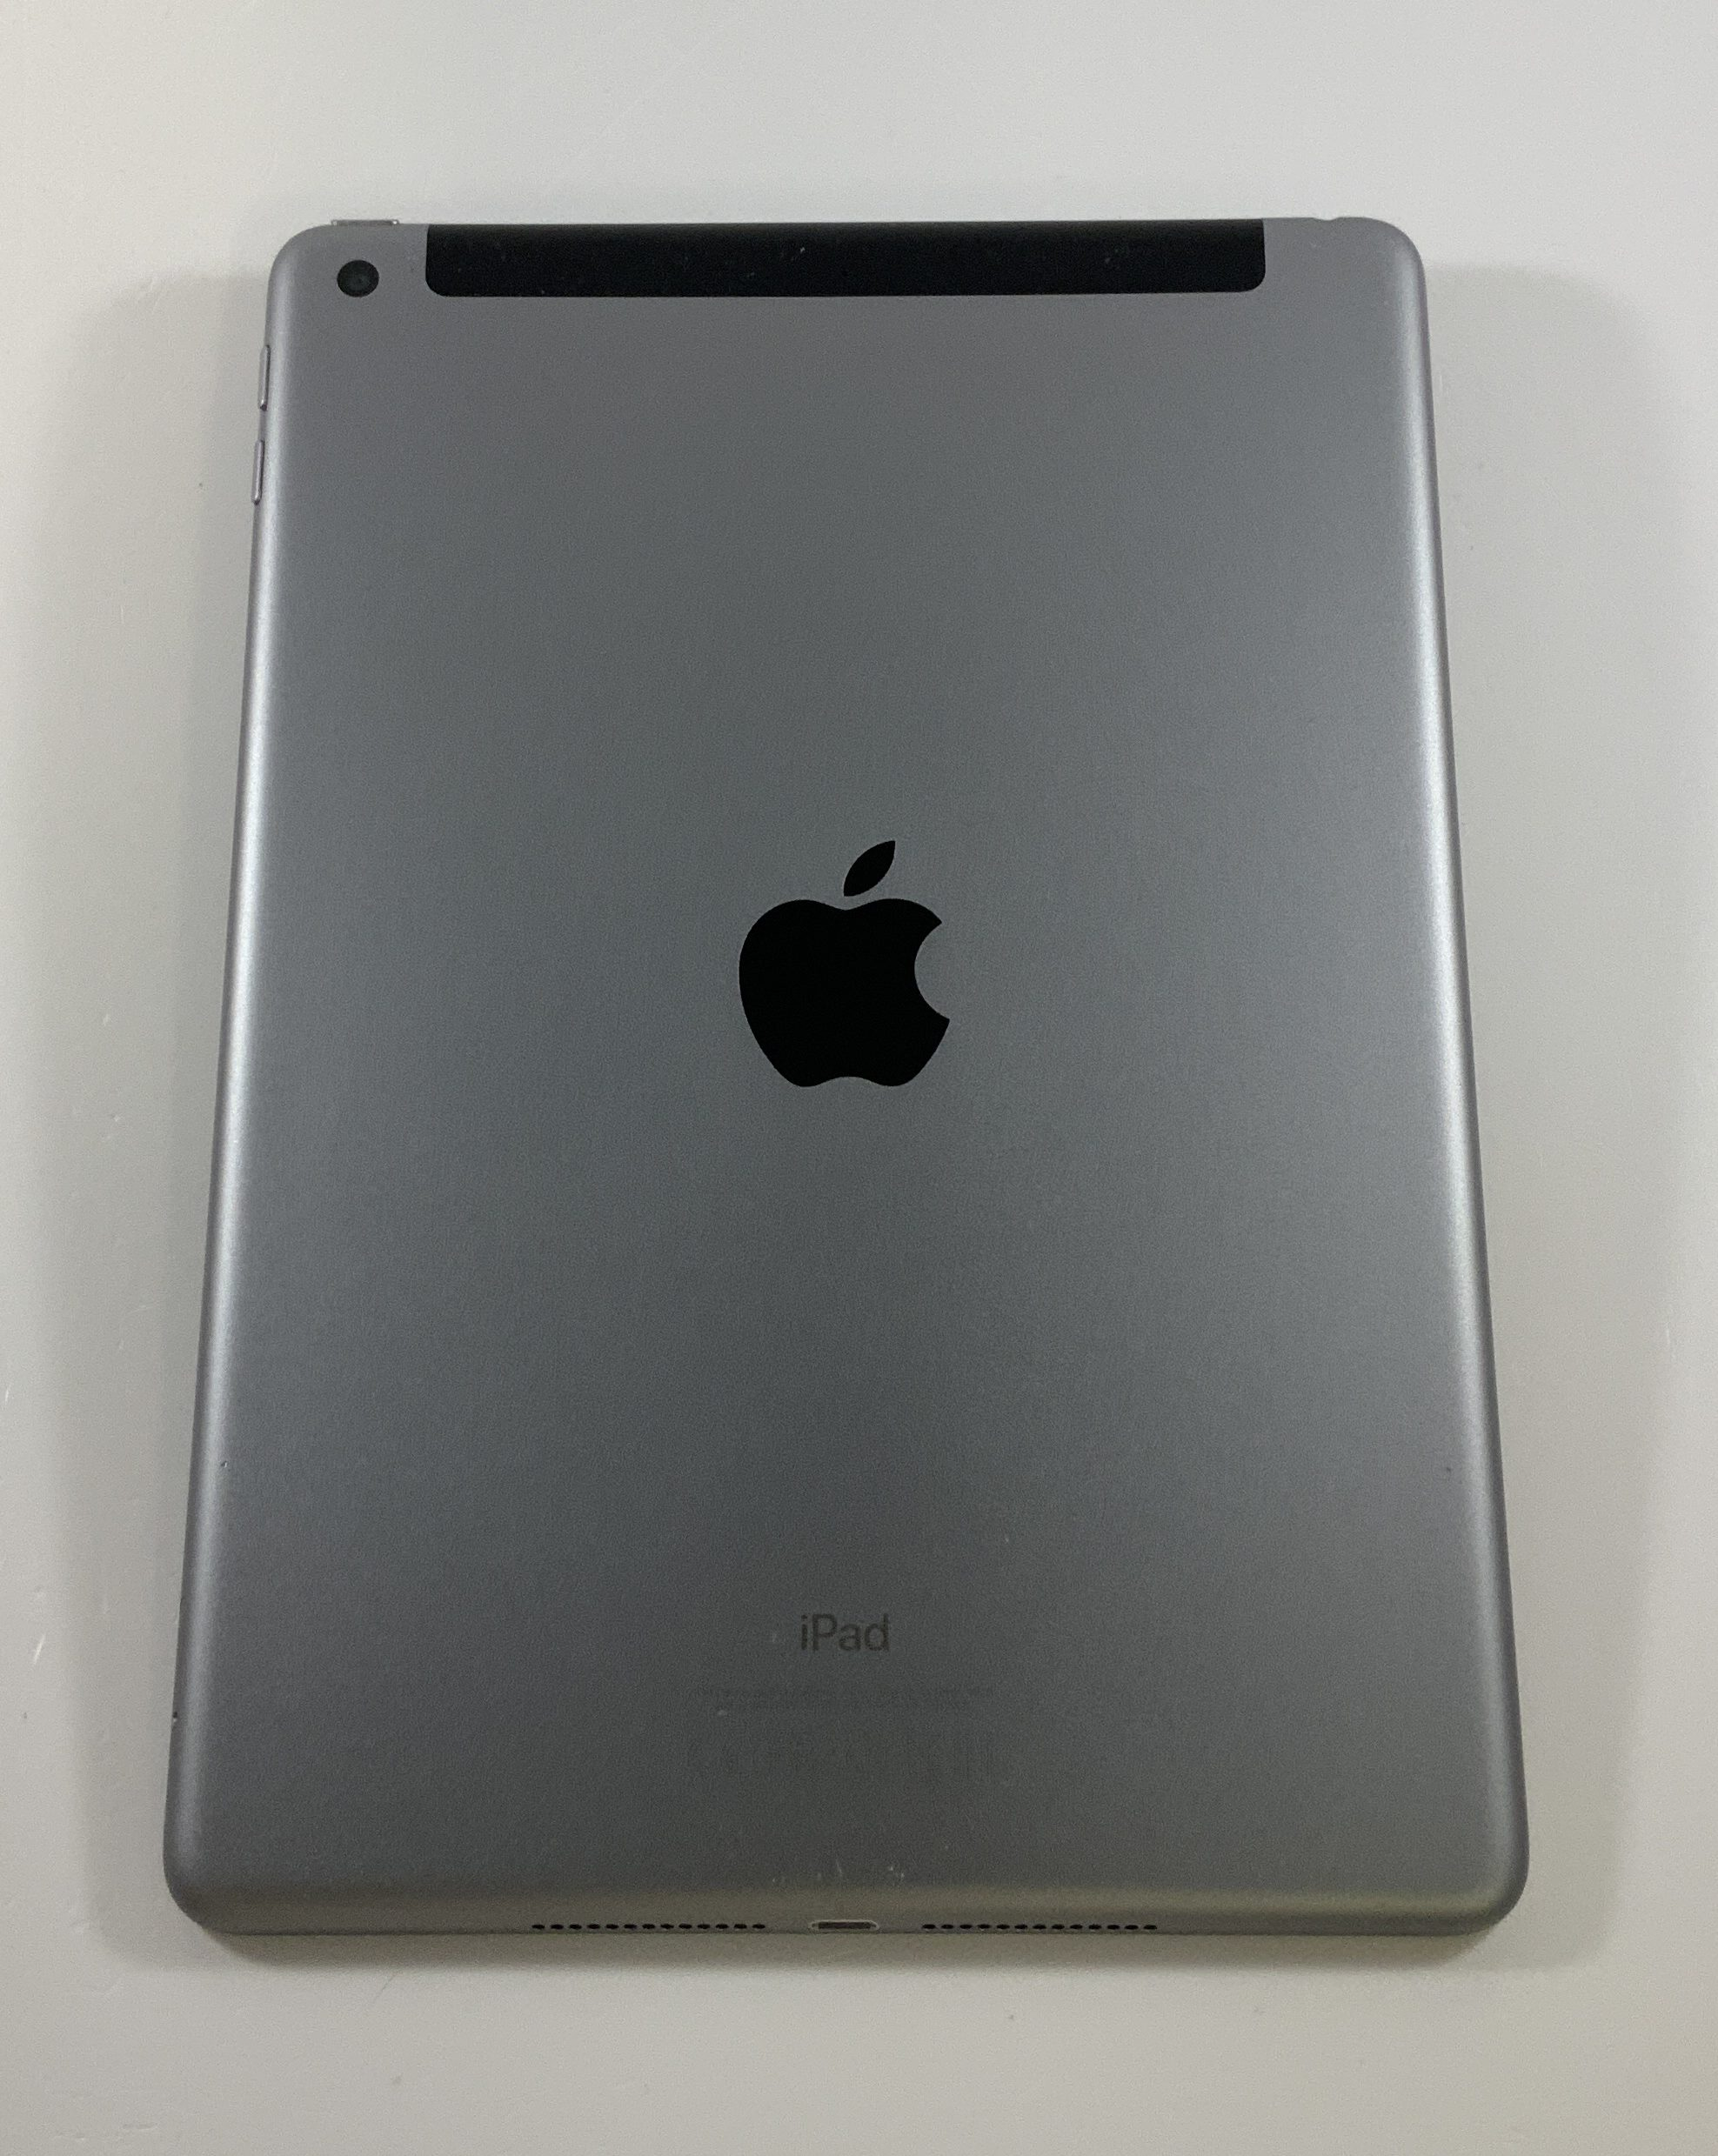 iPad 5 Wi-Fi + Cellular 128GB, 128GB, Space Gray, immagine 2